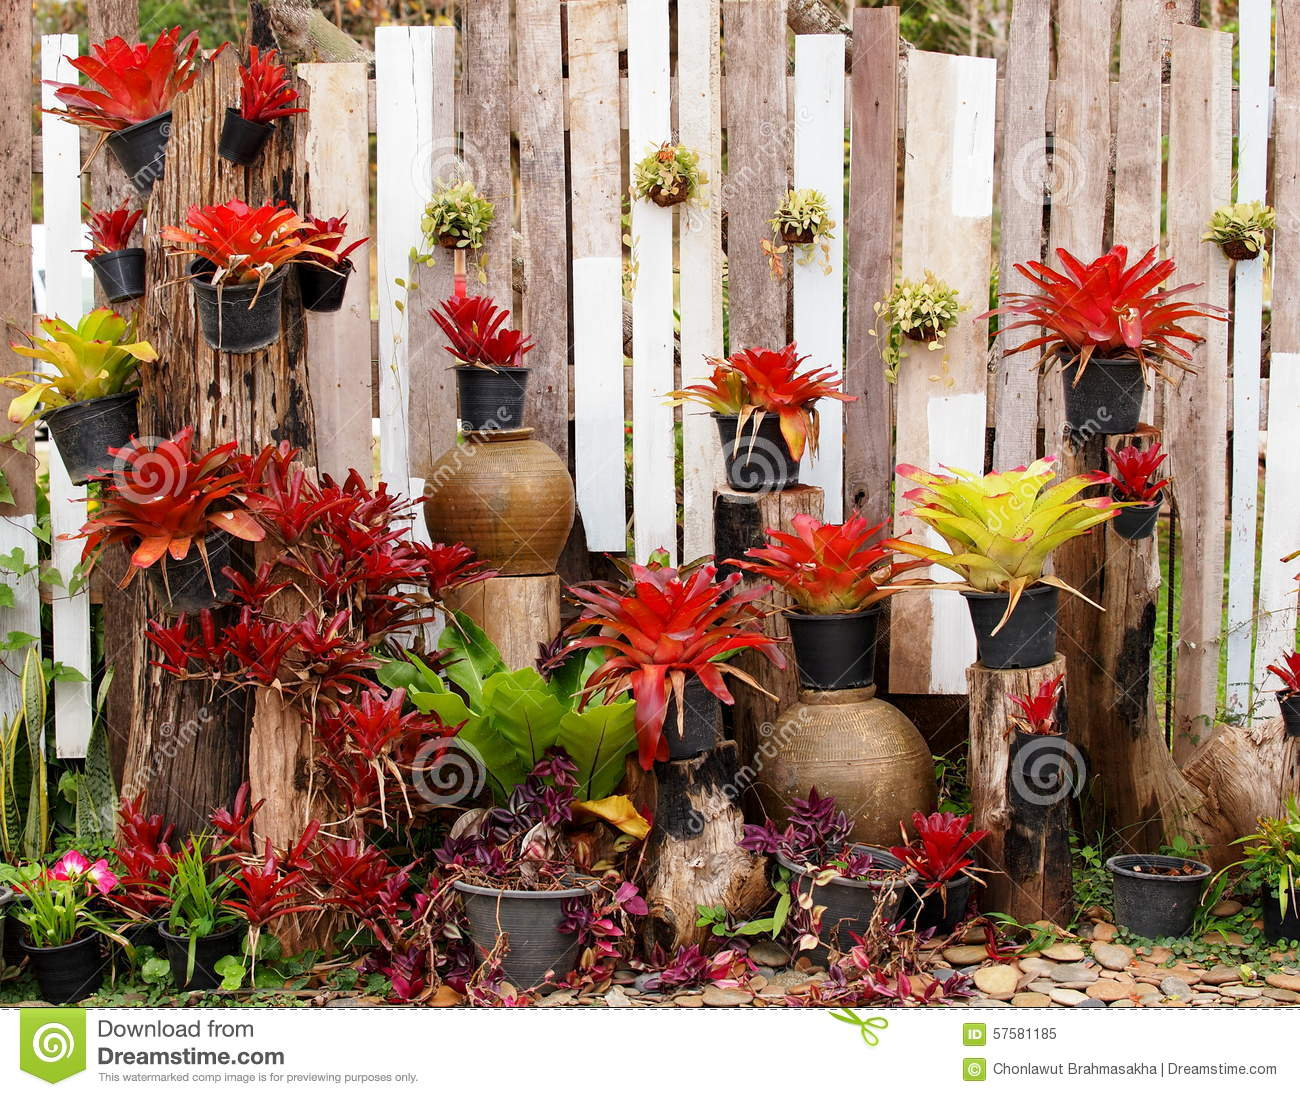 Vertical Garden On A Wooden Wall Outdoor With Decorative Plants And Garden  Plant Pot Hanging On The Wall Under Direct Sunlight On A Sunny Day